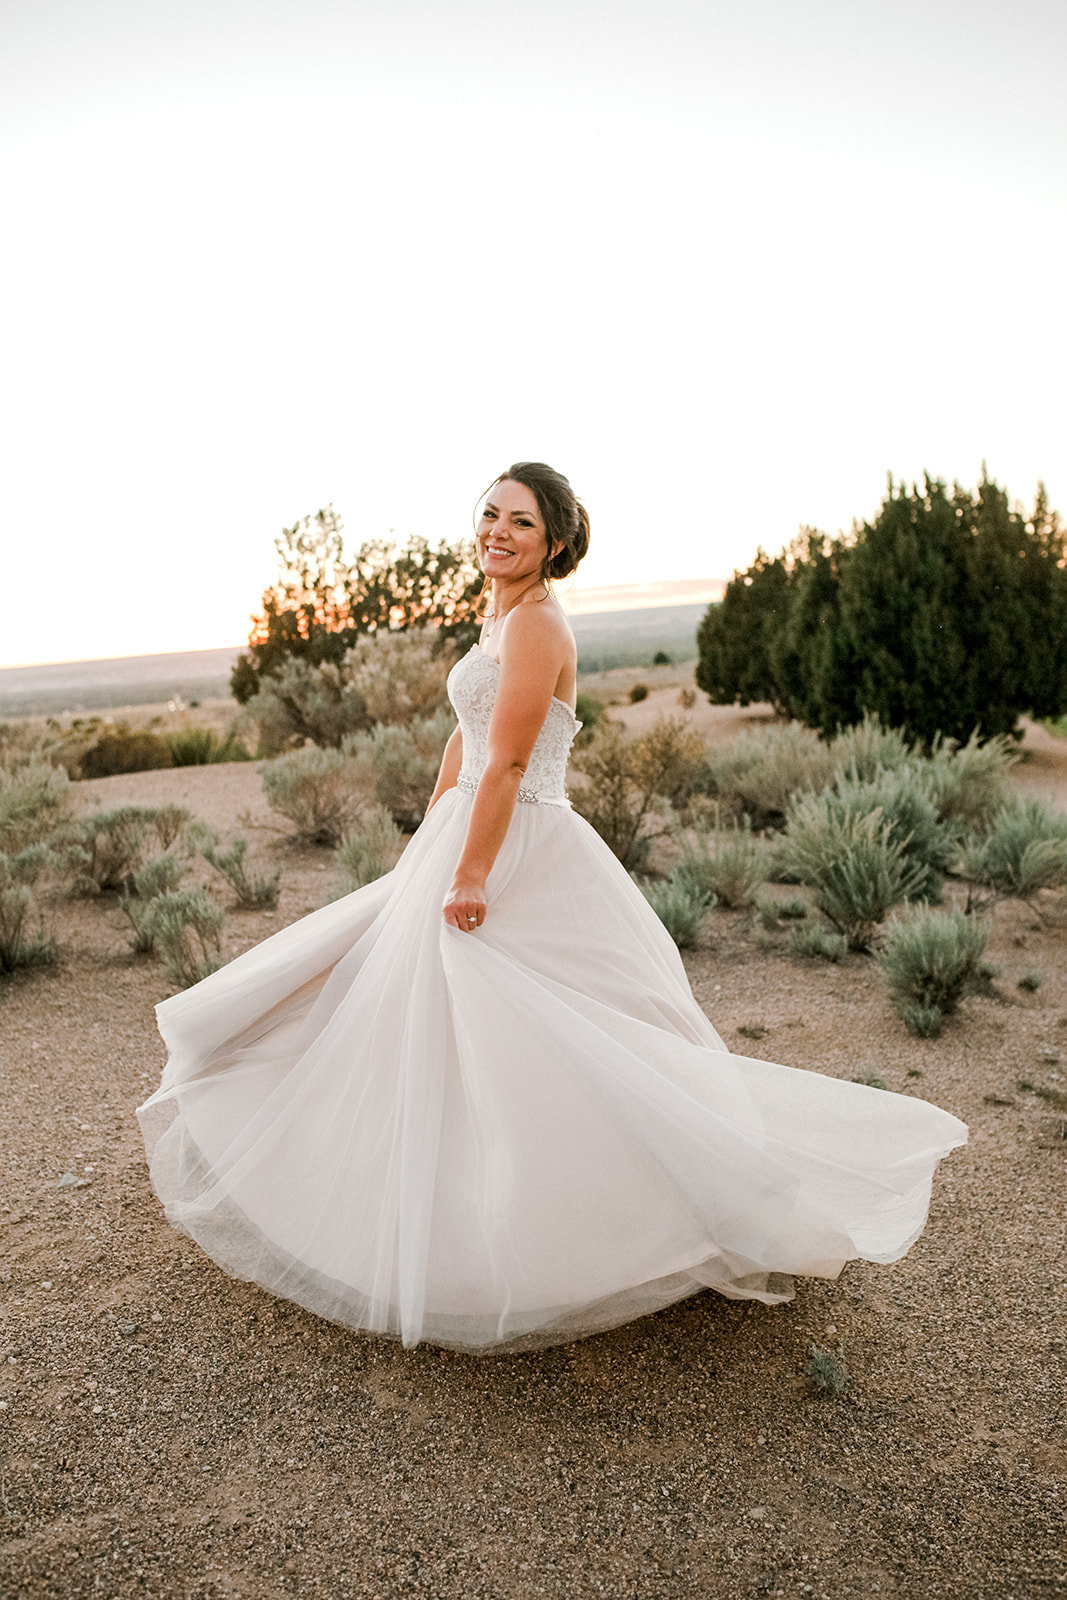 Albuquerque Wedding Photographer_Sandia Casino_www.tylerbrooke.com_Kate Kauffman_050